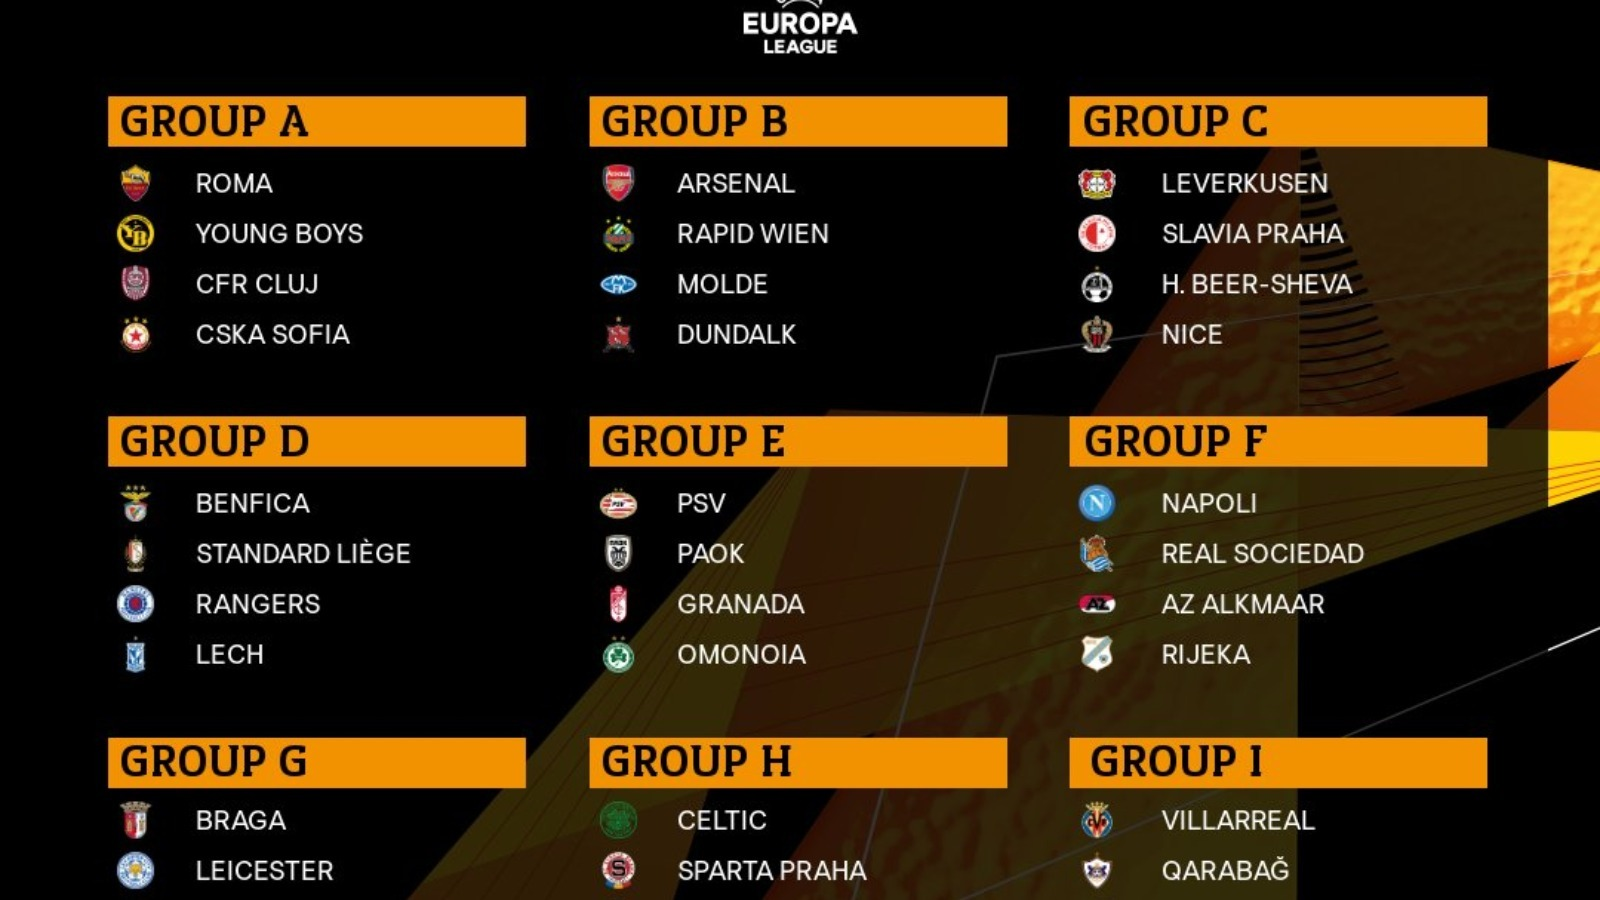 2020 21 uefa europa league group stage draw made in nyon livematchupdates com 2020 21 uefa europa league group stage